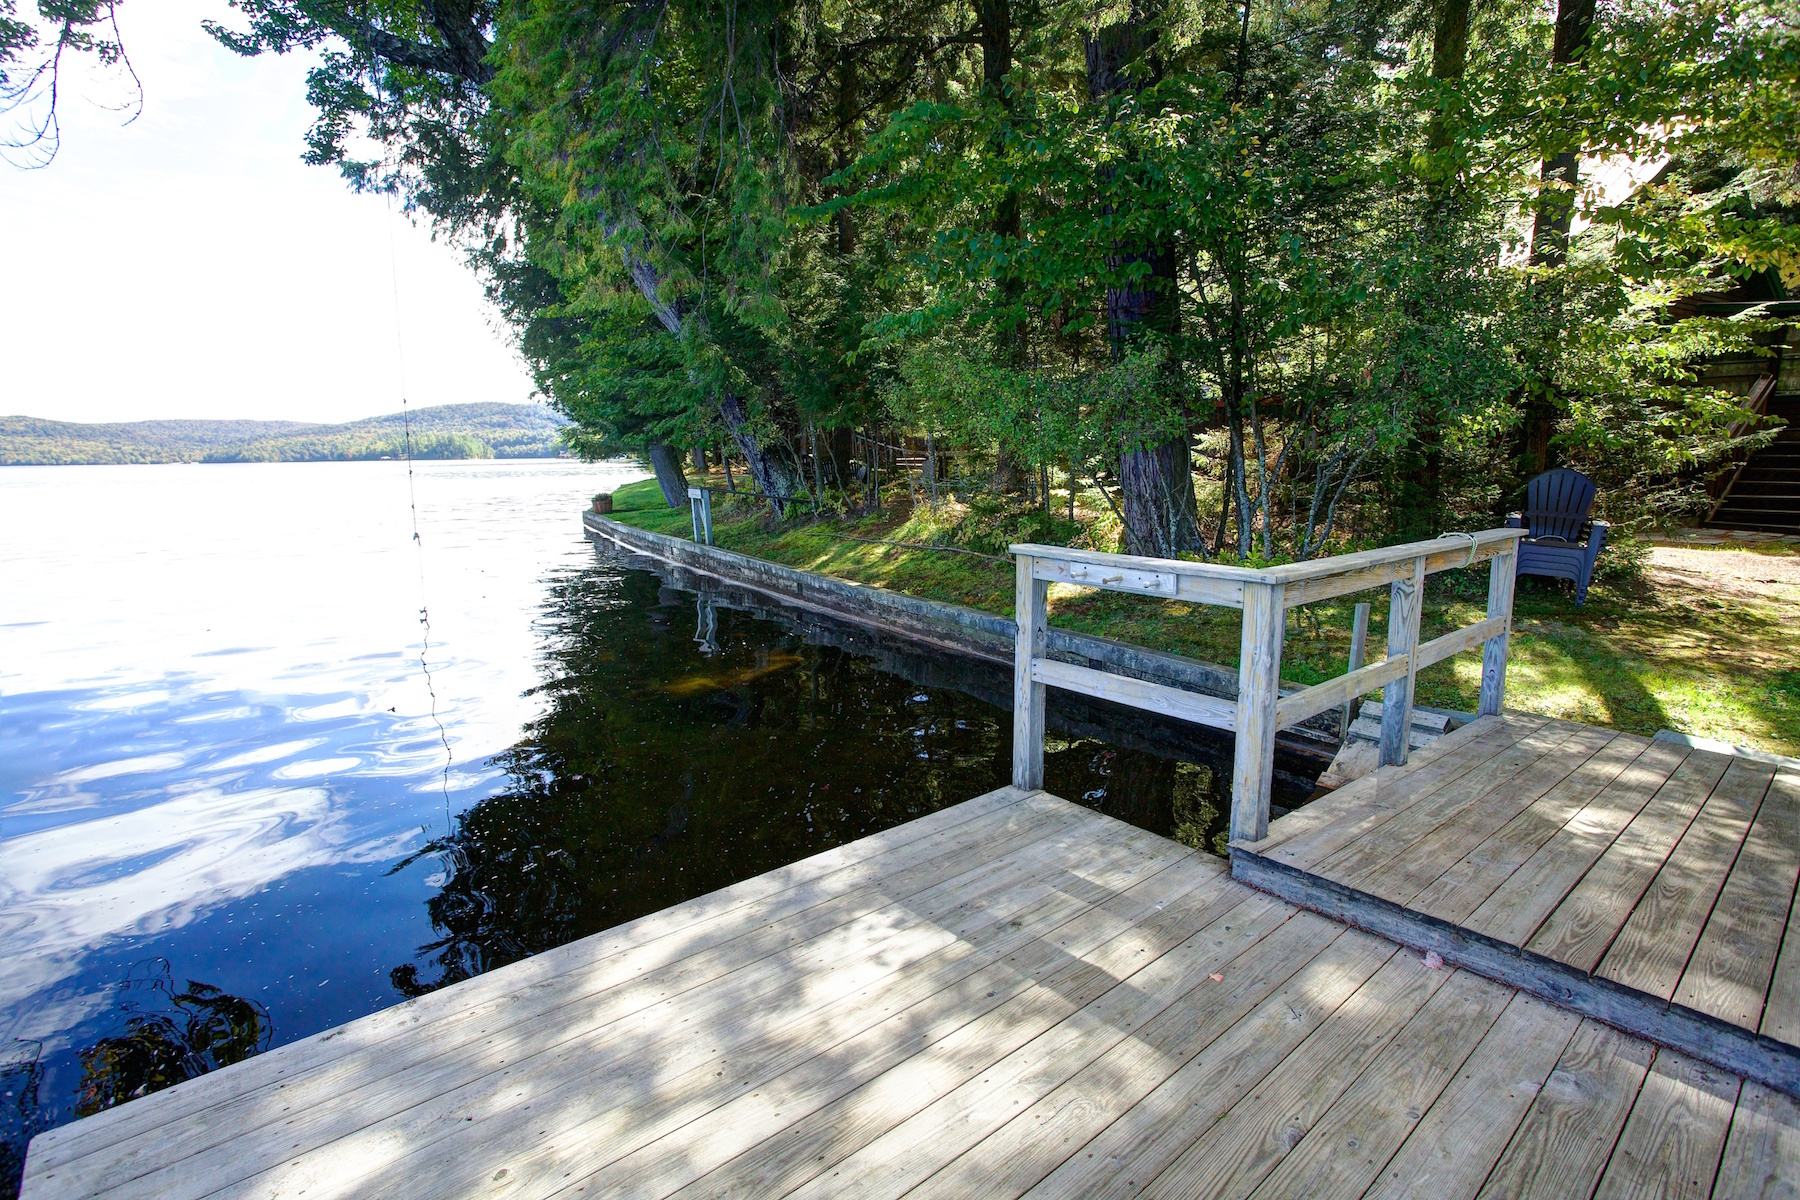 Additional photo for property listing at Lakeside Plendor 29  Kelley Road Inlet, Nueva York 13360 Estados Unidos